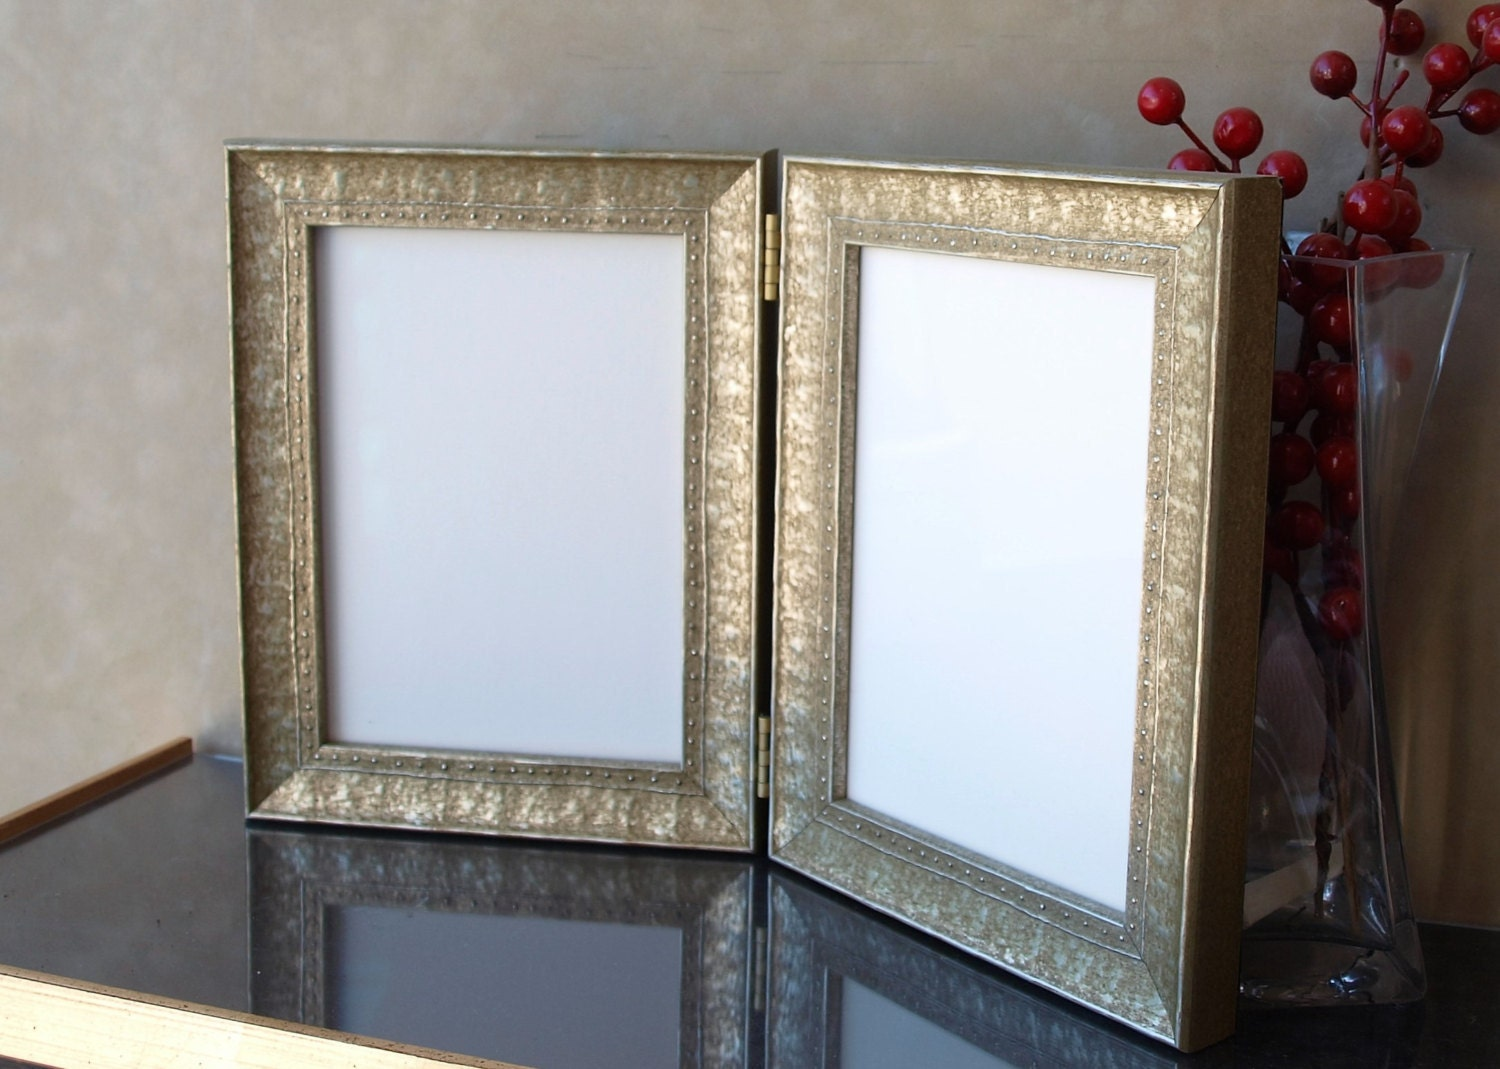 studded double hinged photo frame 3 x 5 4 x 6 5 x 7 8 x. Black Bedroom Furniture Sets. Home Design Ideas